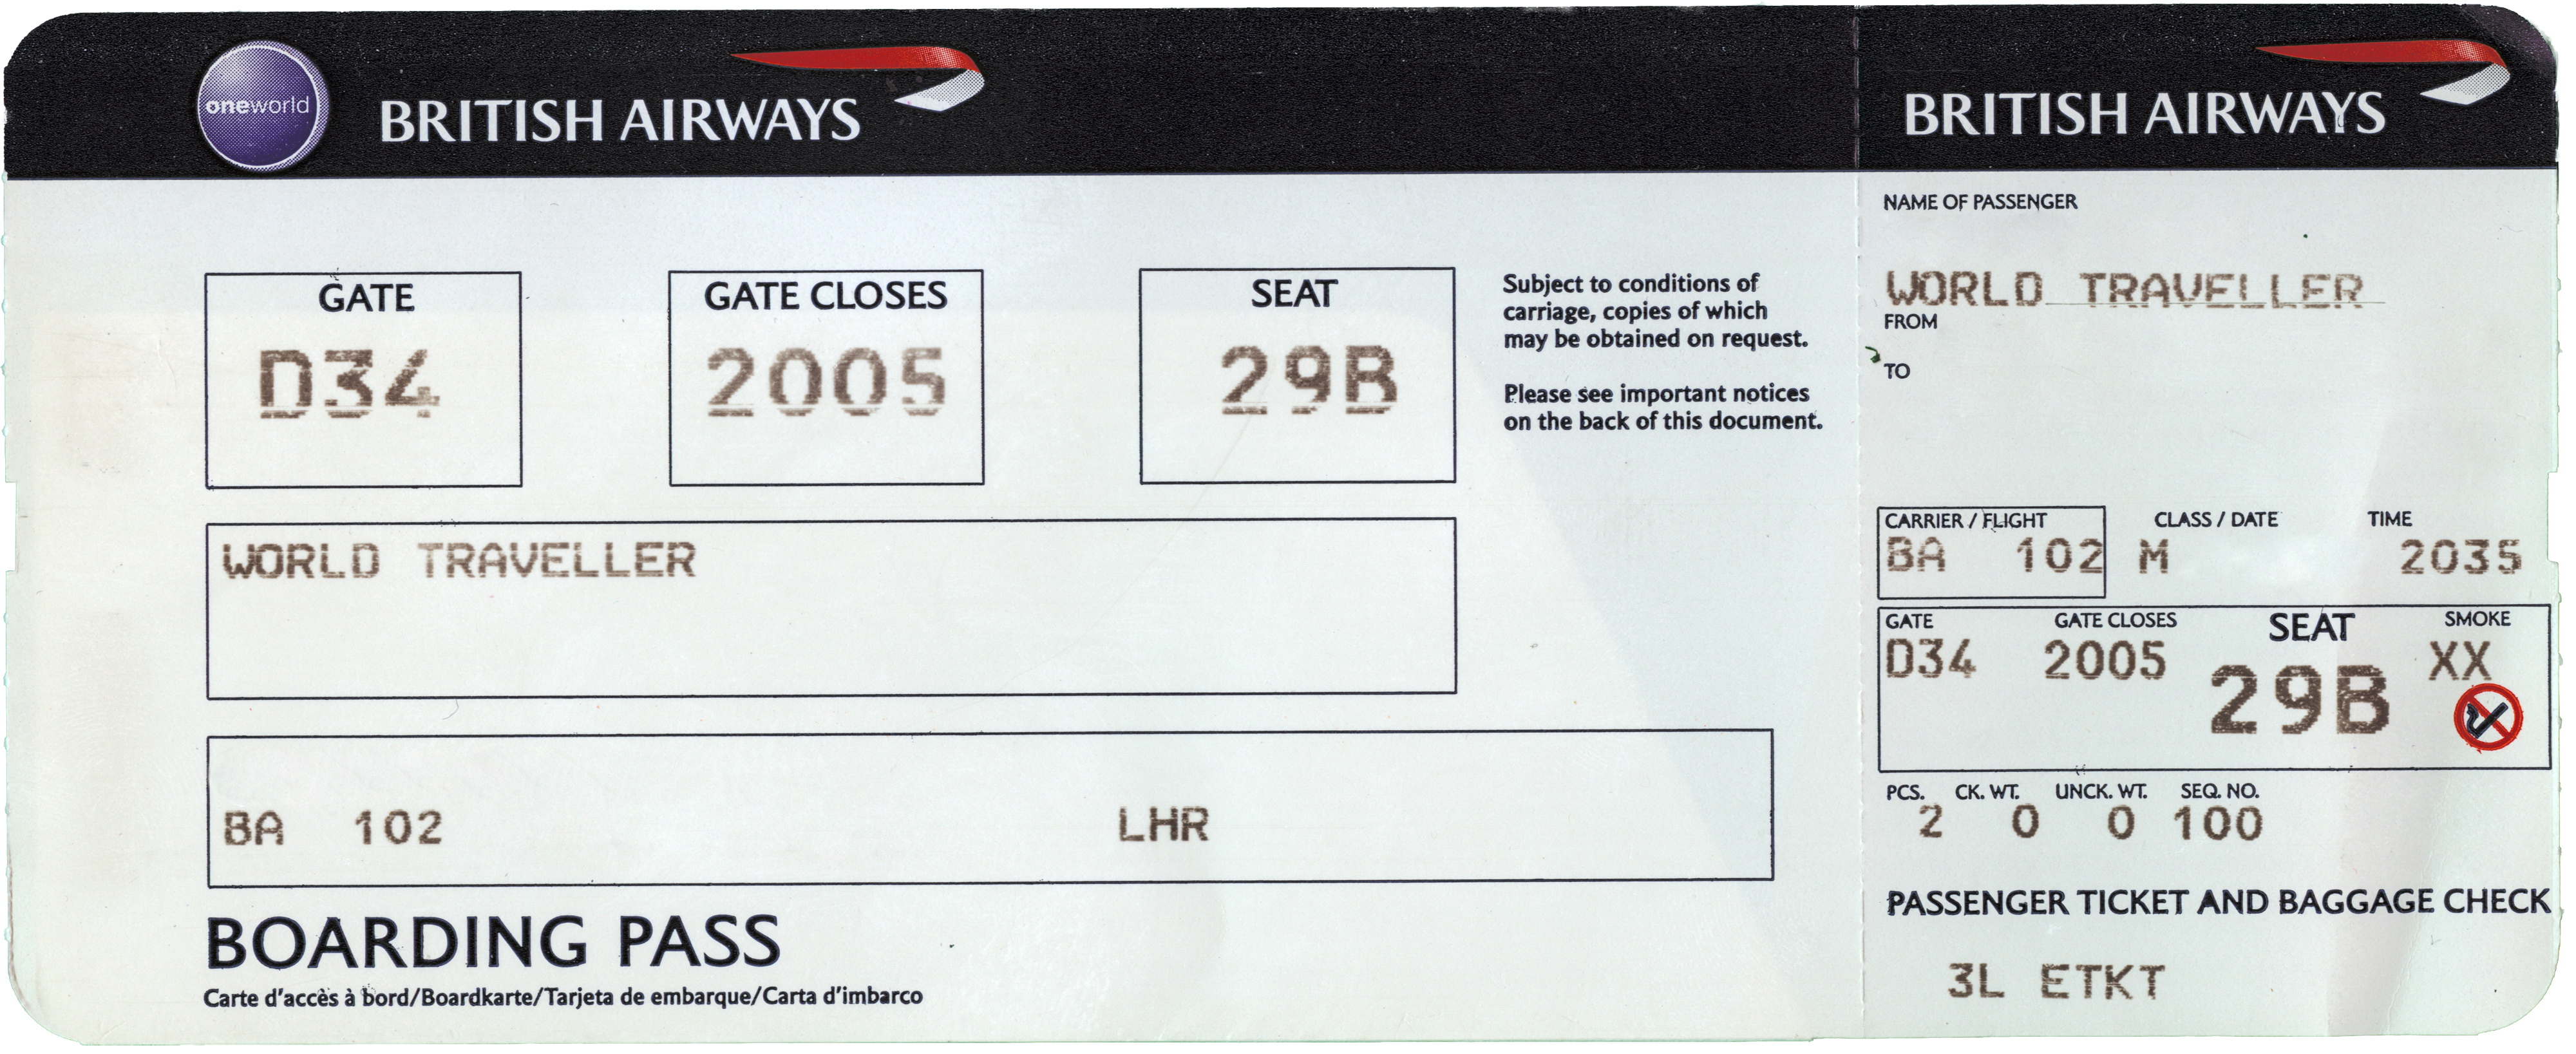 Boarding pass ticket template pronofoot35fo Image collections